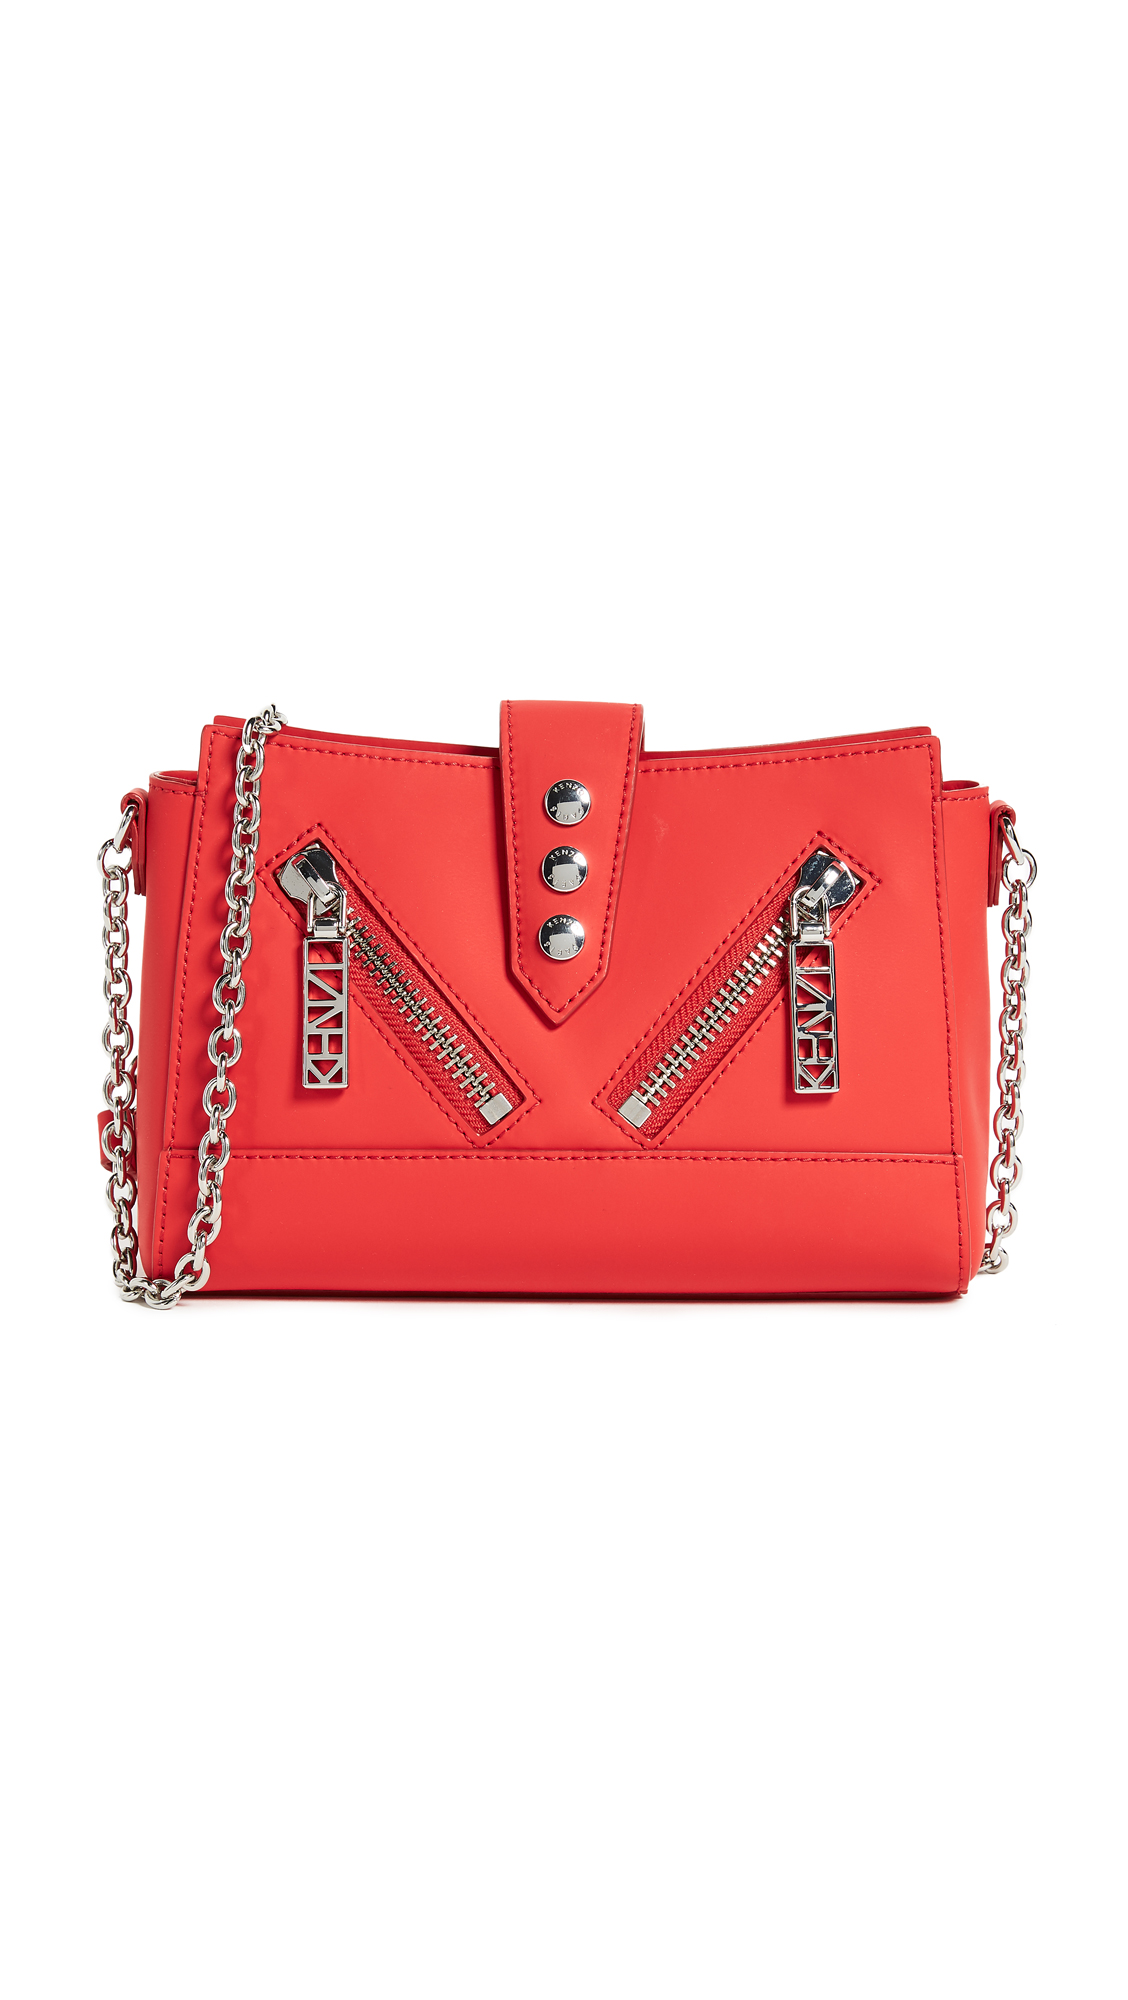 KENZO Kalifornia Cross Body Bag - Red